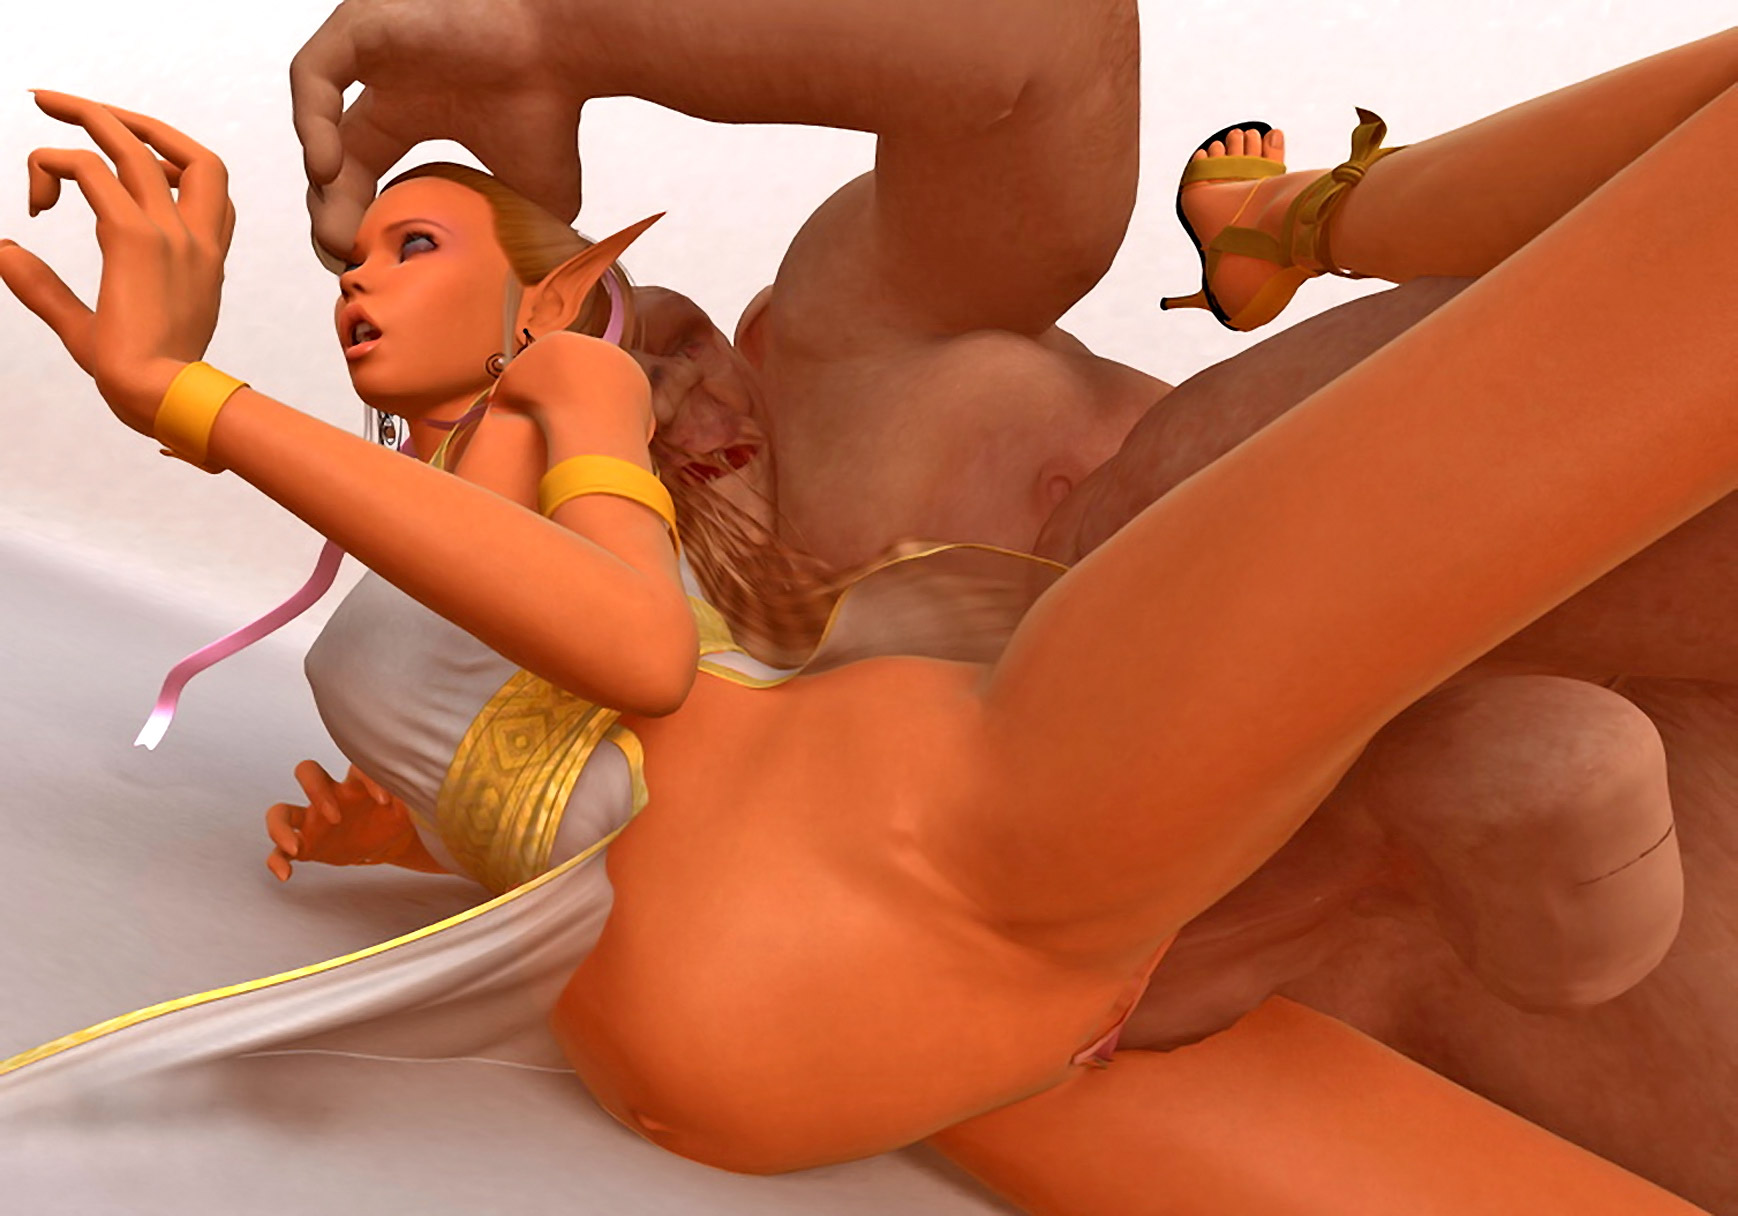 Gambar hentai porno 3d exposed image